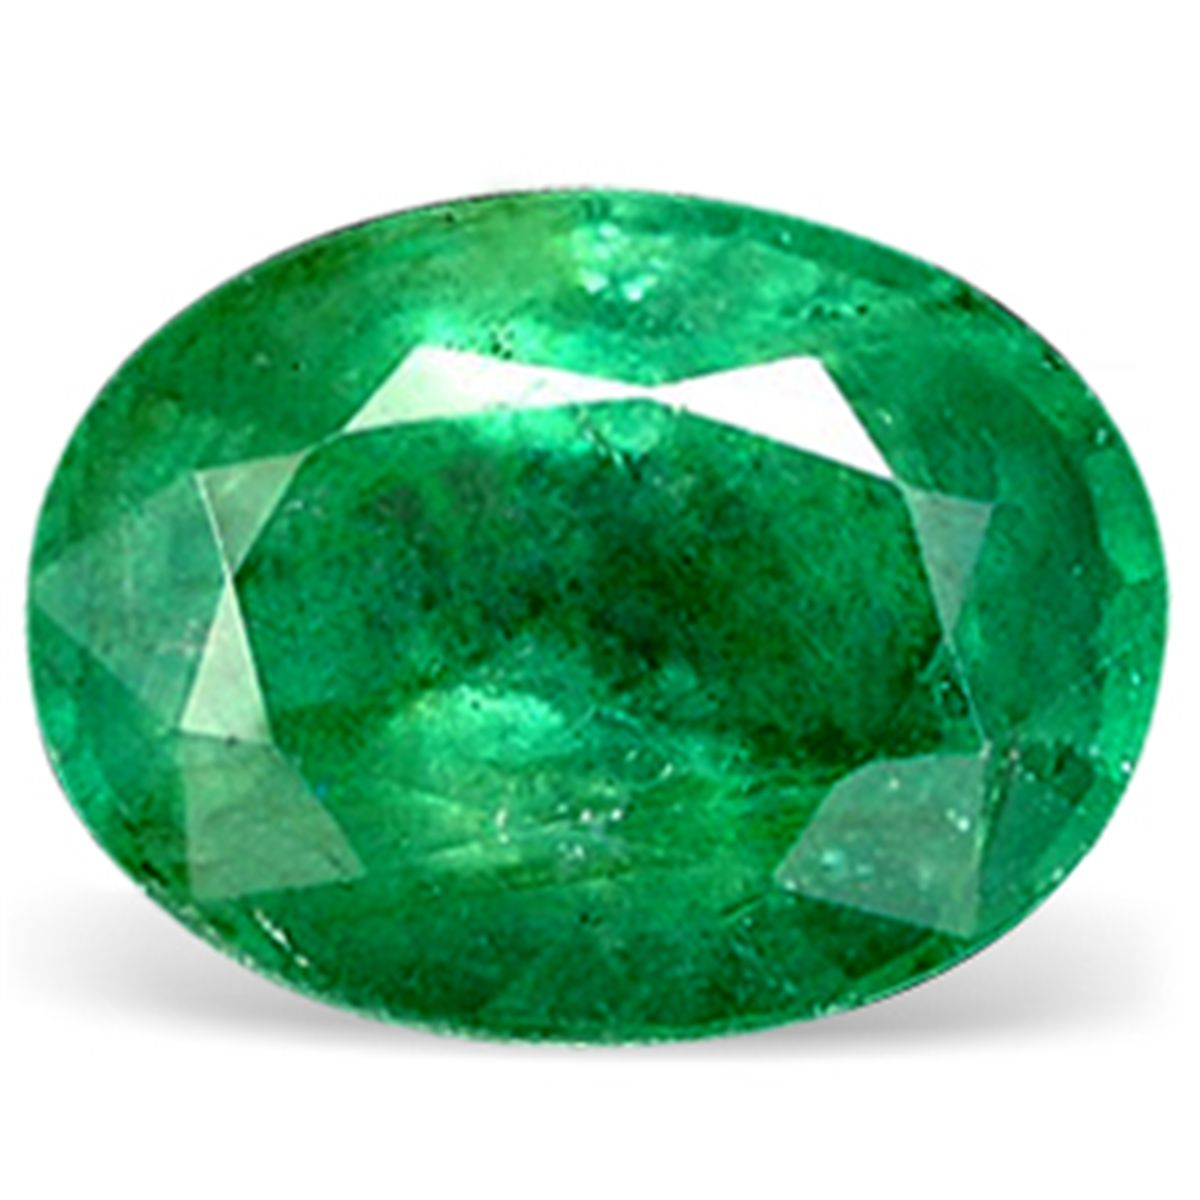 Emerald Gemstone | Buy Emerald Gemstone | Online Emerald ...